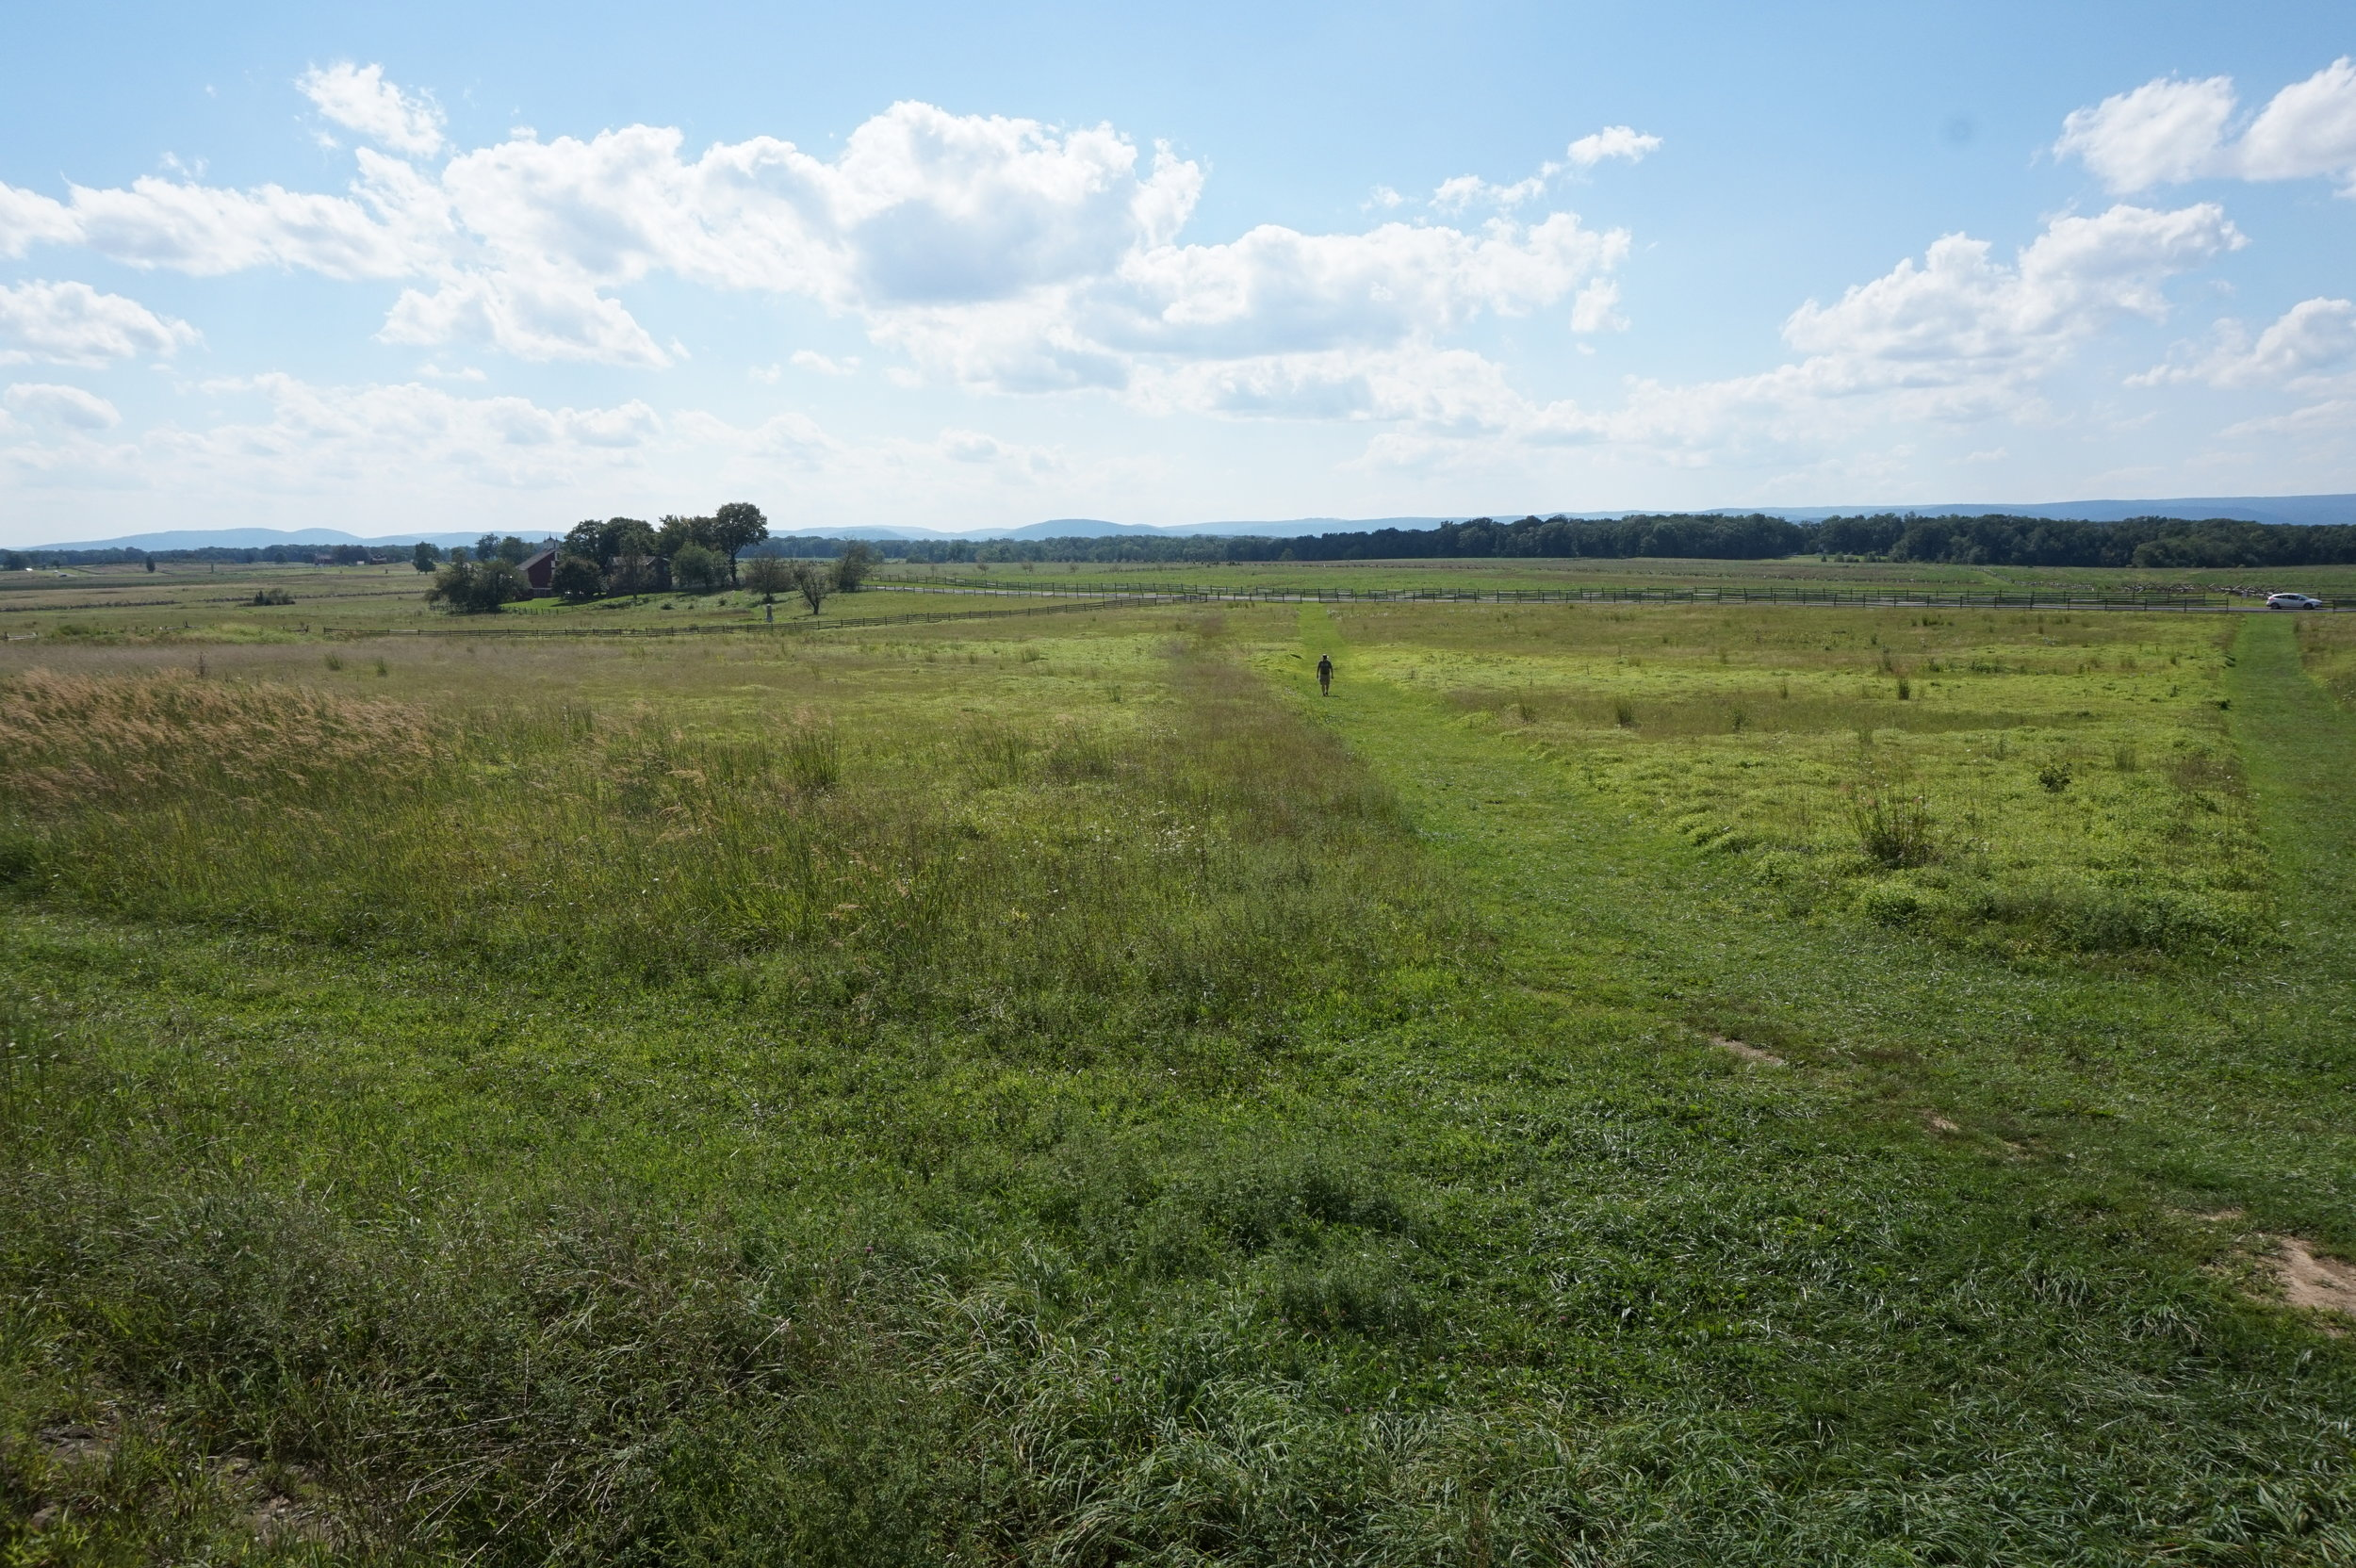 The open field crossed by 12,500 Confederate soldiers during Pickett's Charge.